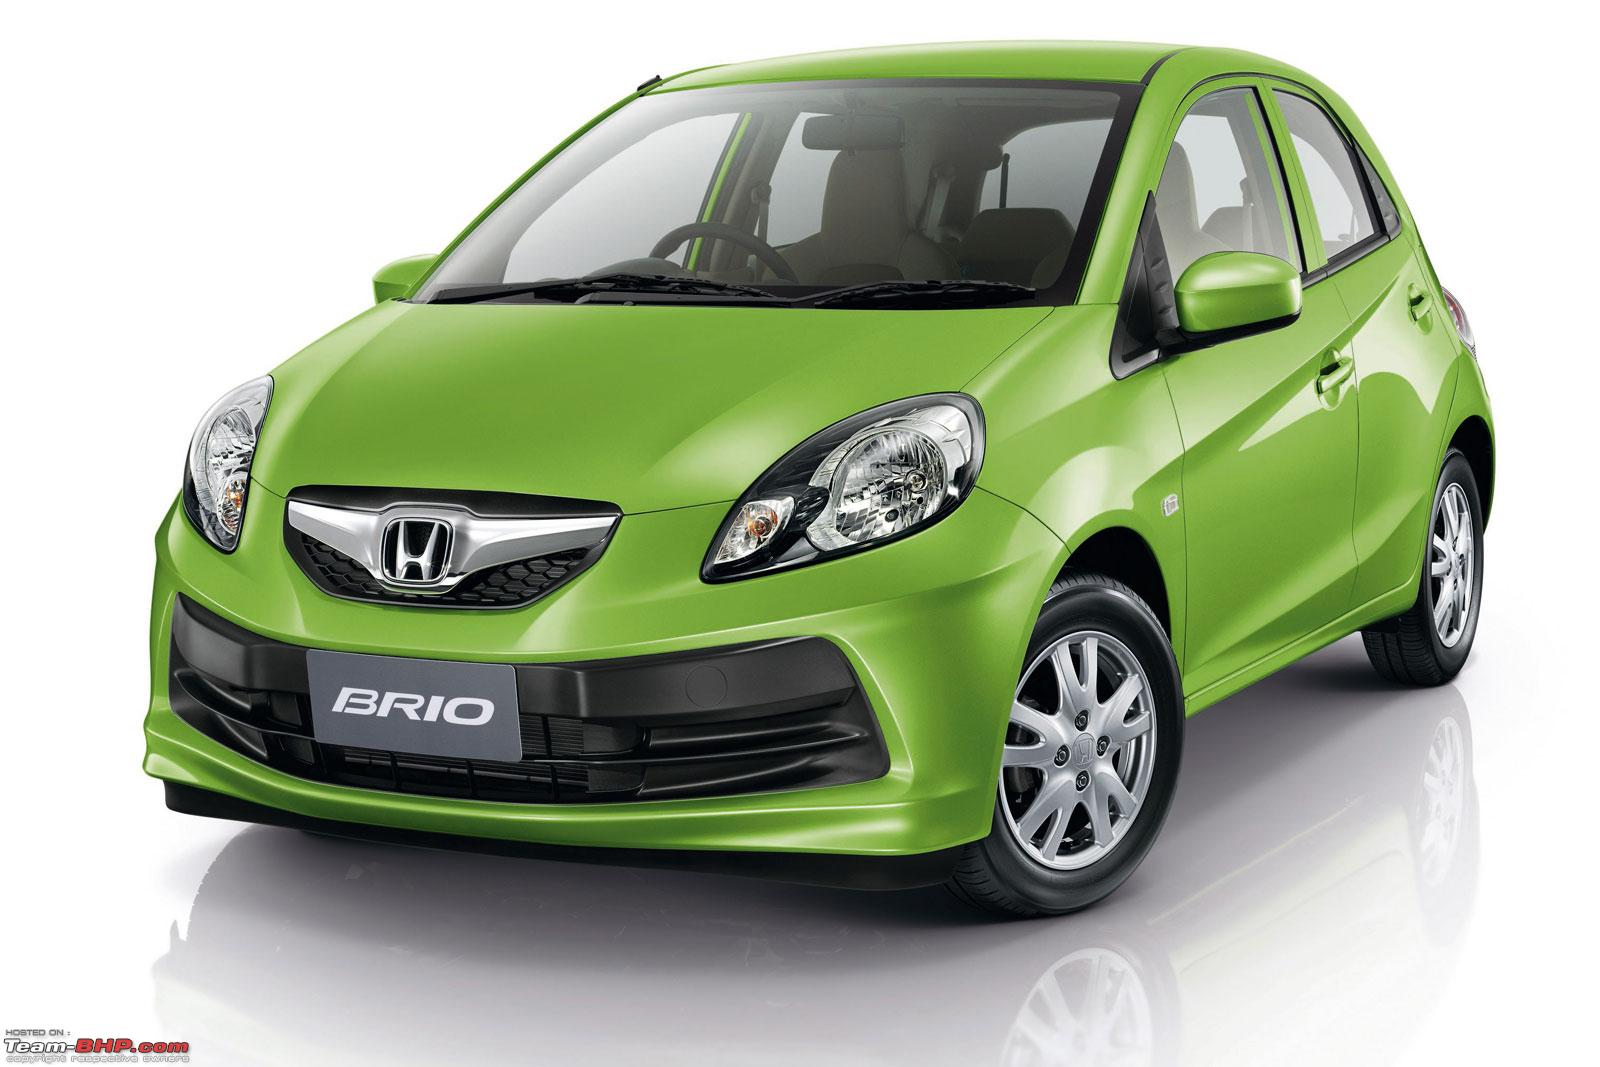 Automatic cars in india under 10 lakhs 2018 12